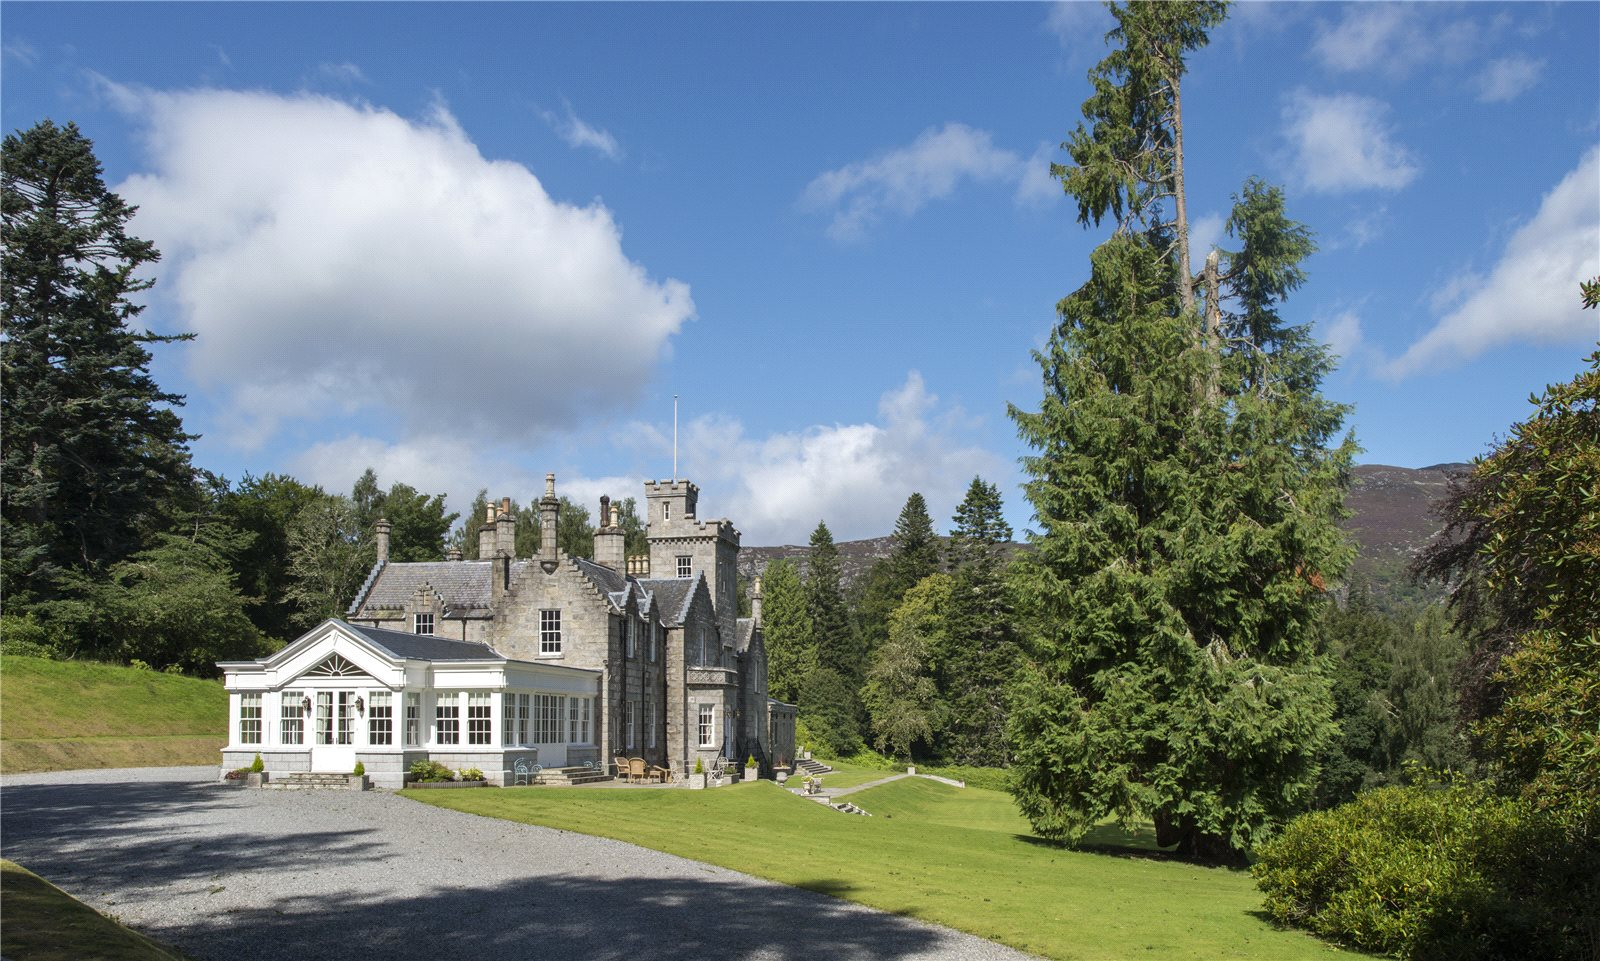 Apartments / Residences for Sale at Newtonmore, Inverness-Shire, PH20 Inverness Shire, Scotland